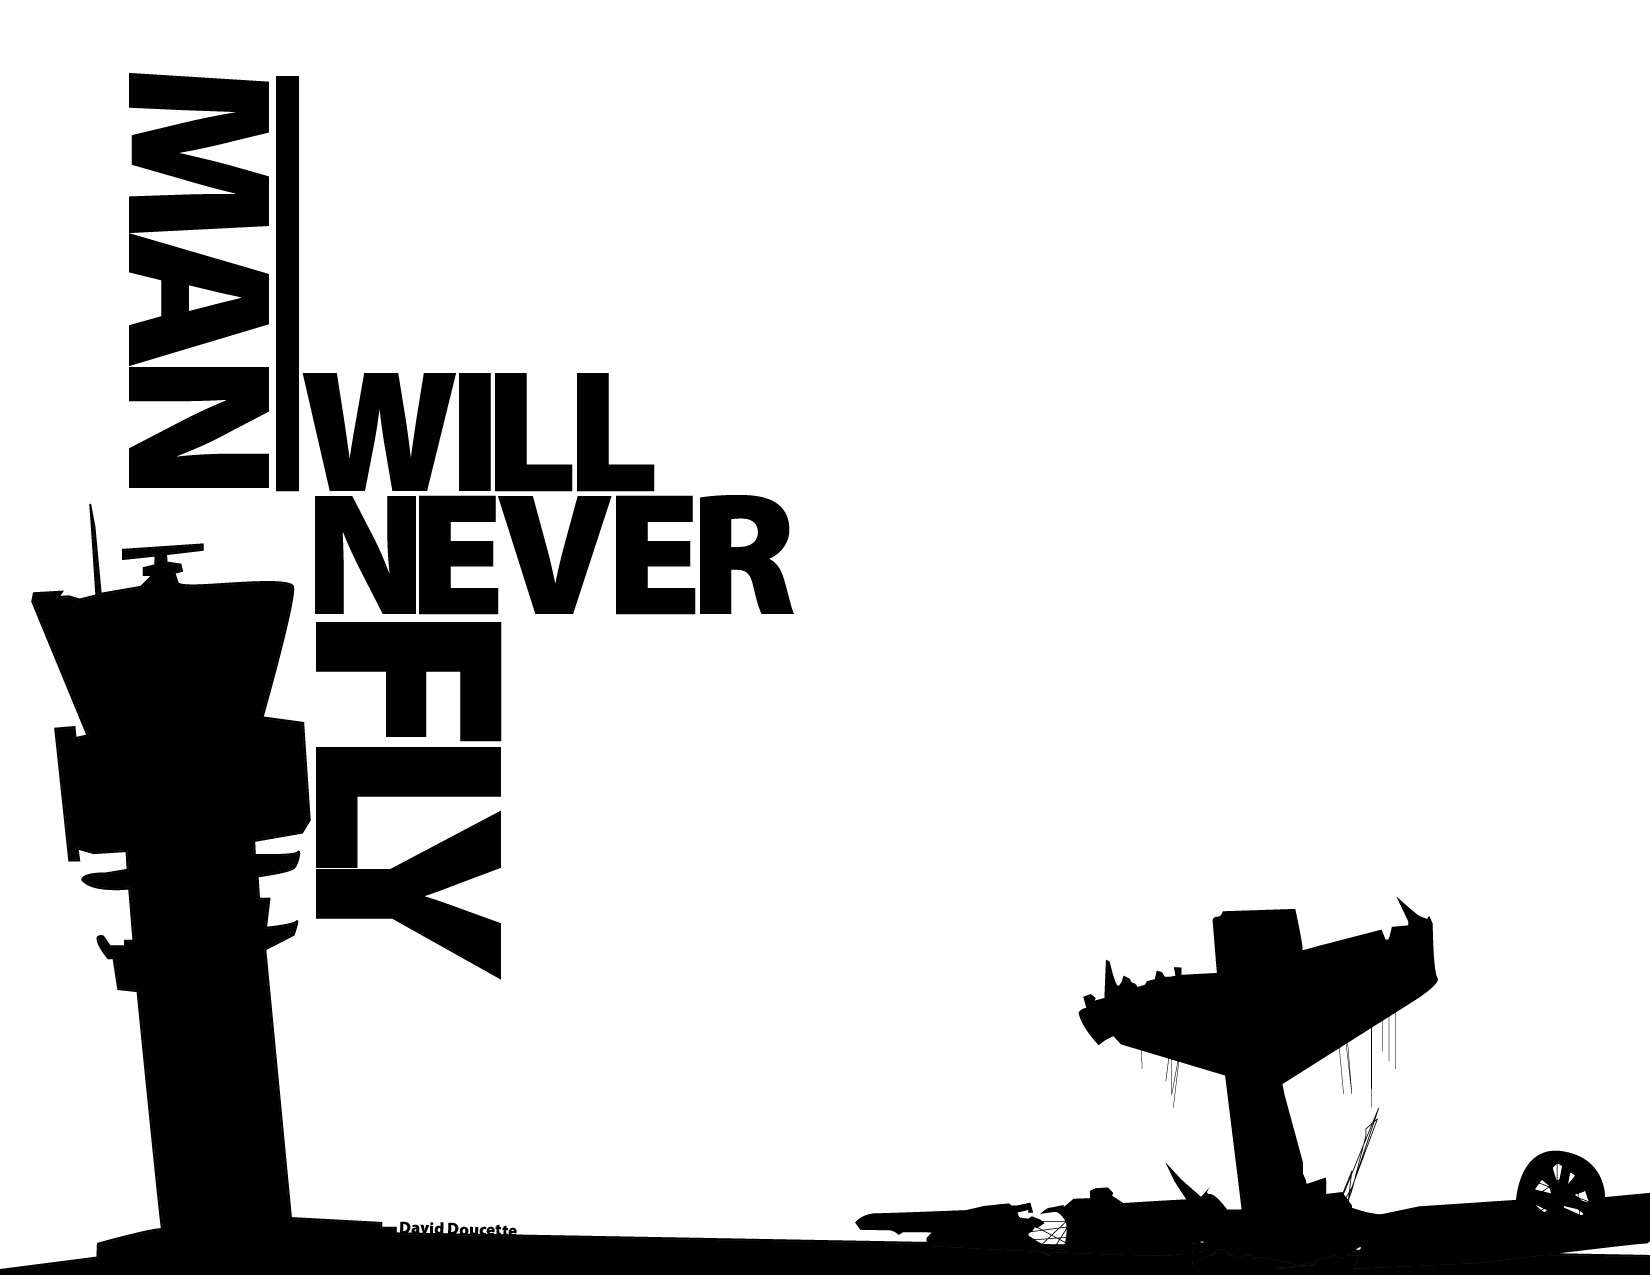 man will never fly